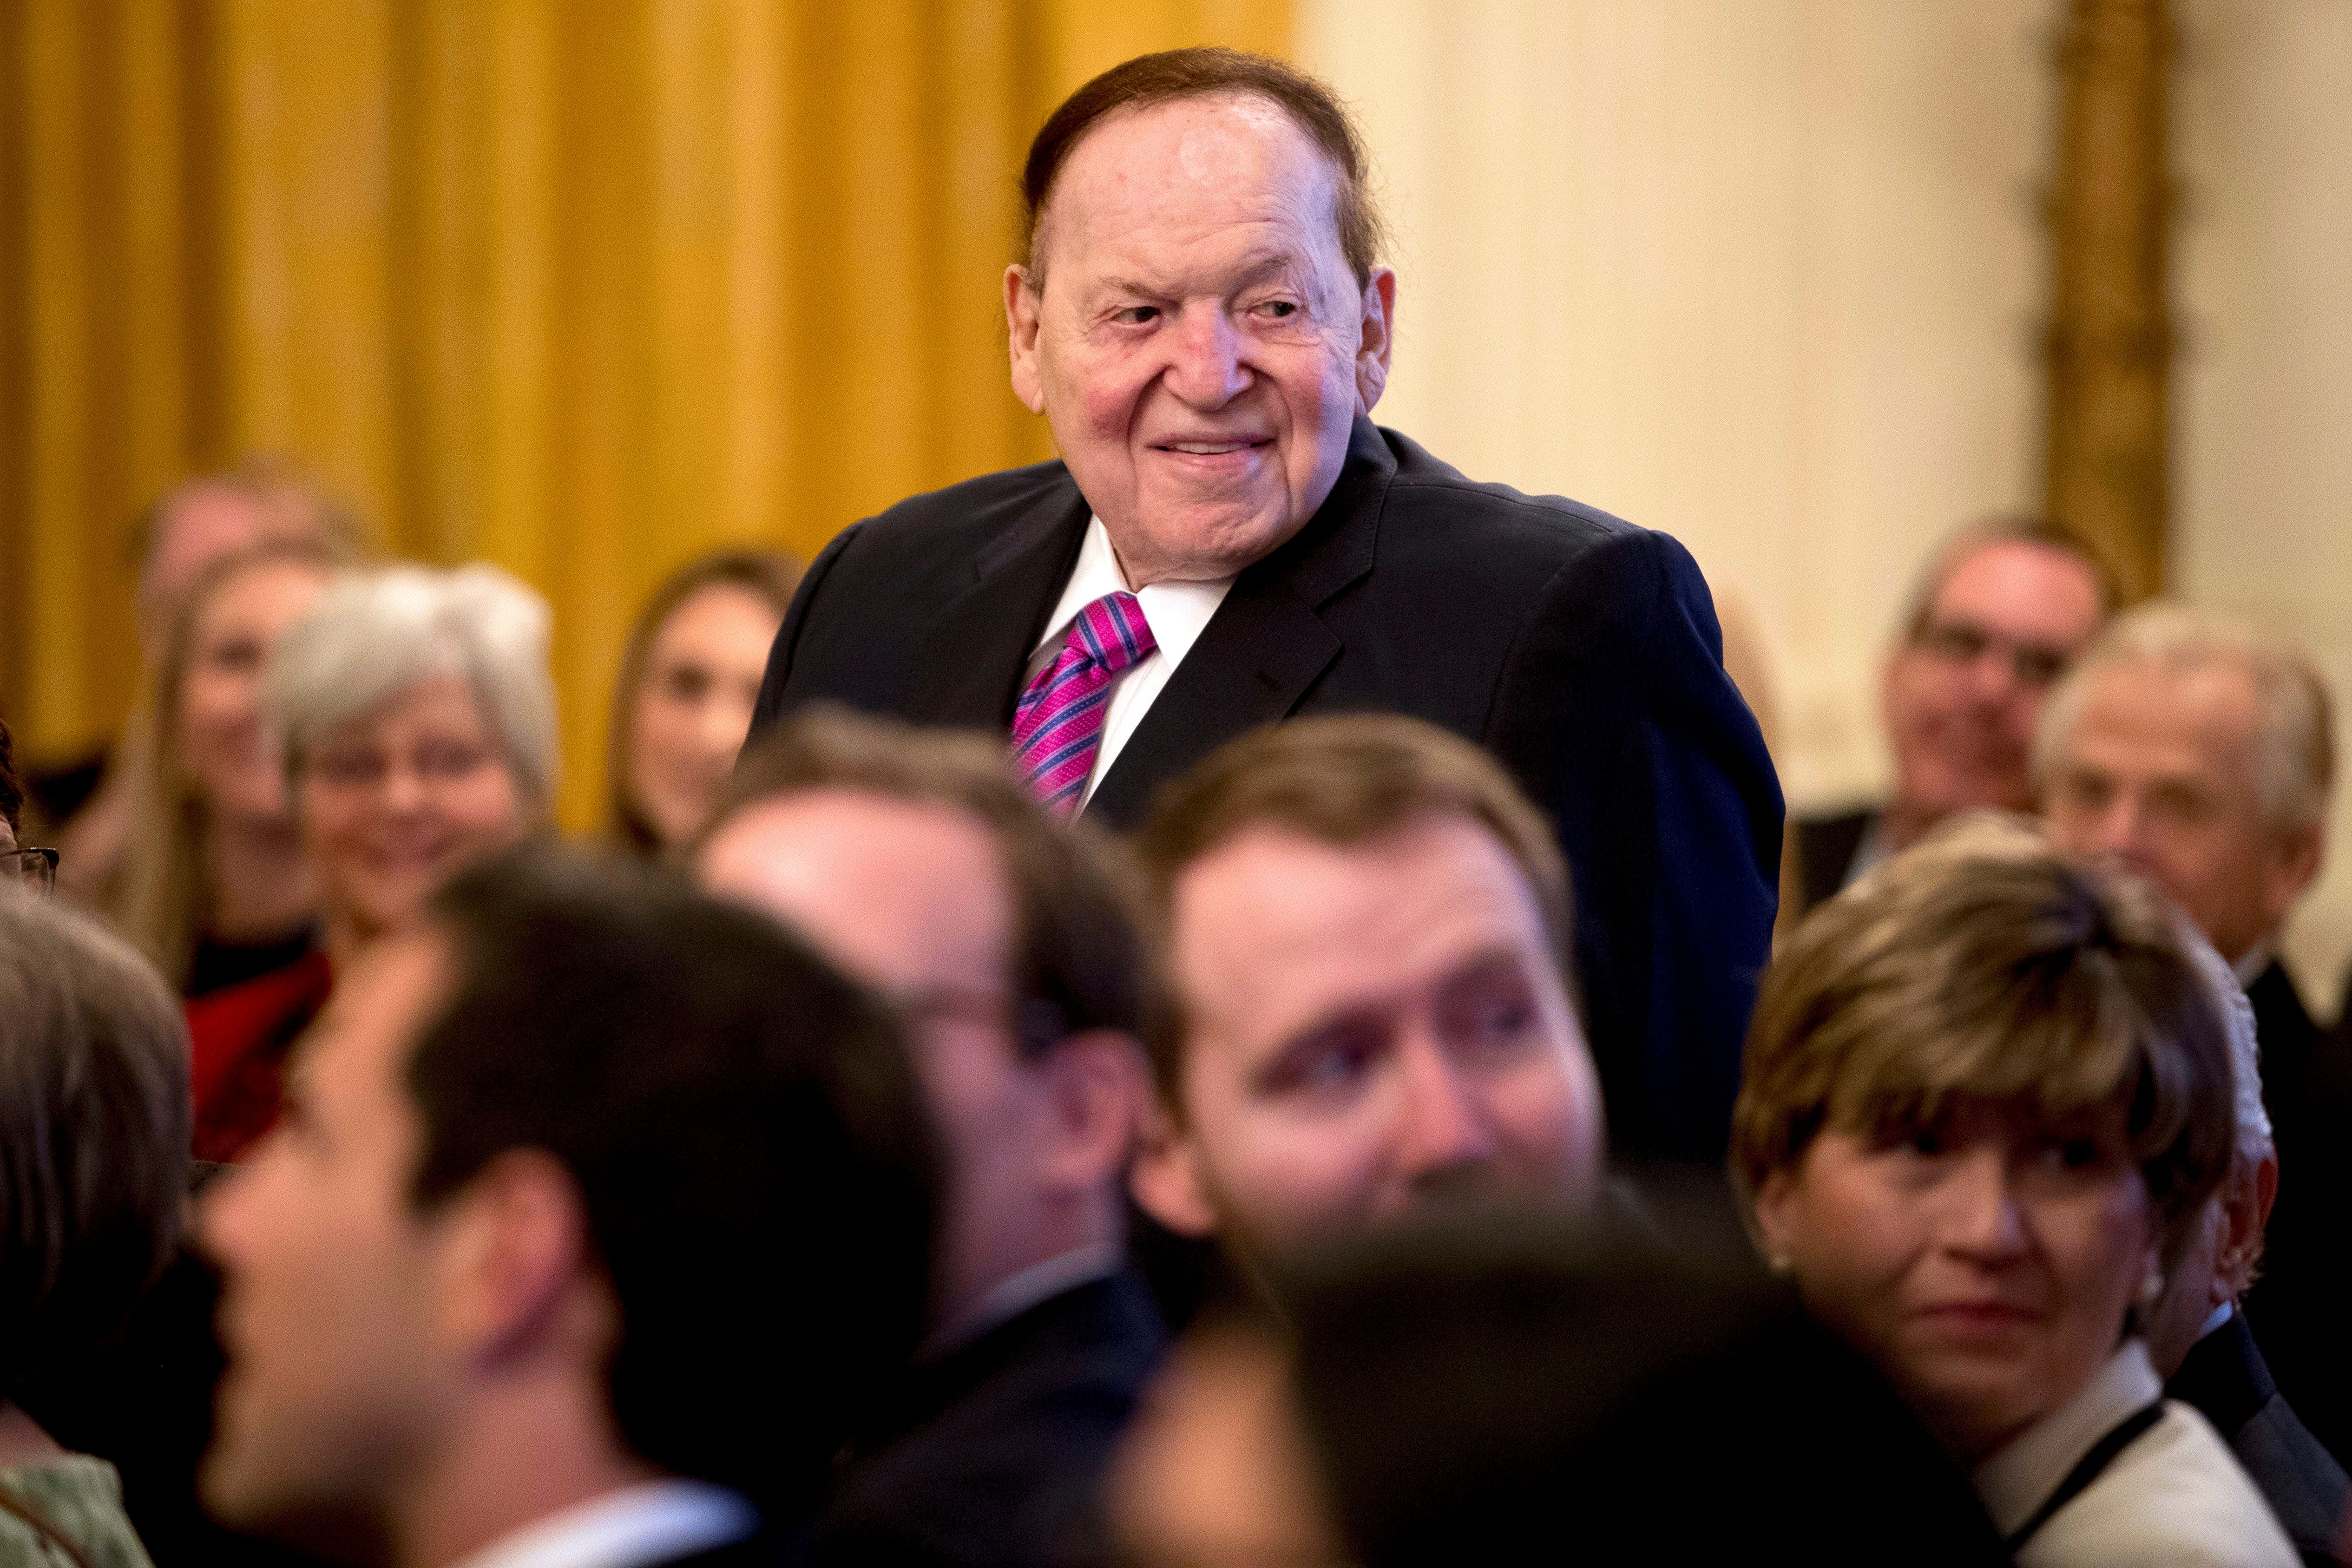 Sheldon Adelson attends a White House ceremony to see his wife, Miriam, receive the Medal of Freedom from President Donald Trump in November 2018.